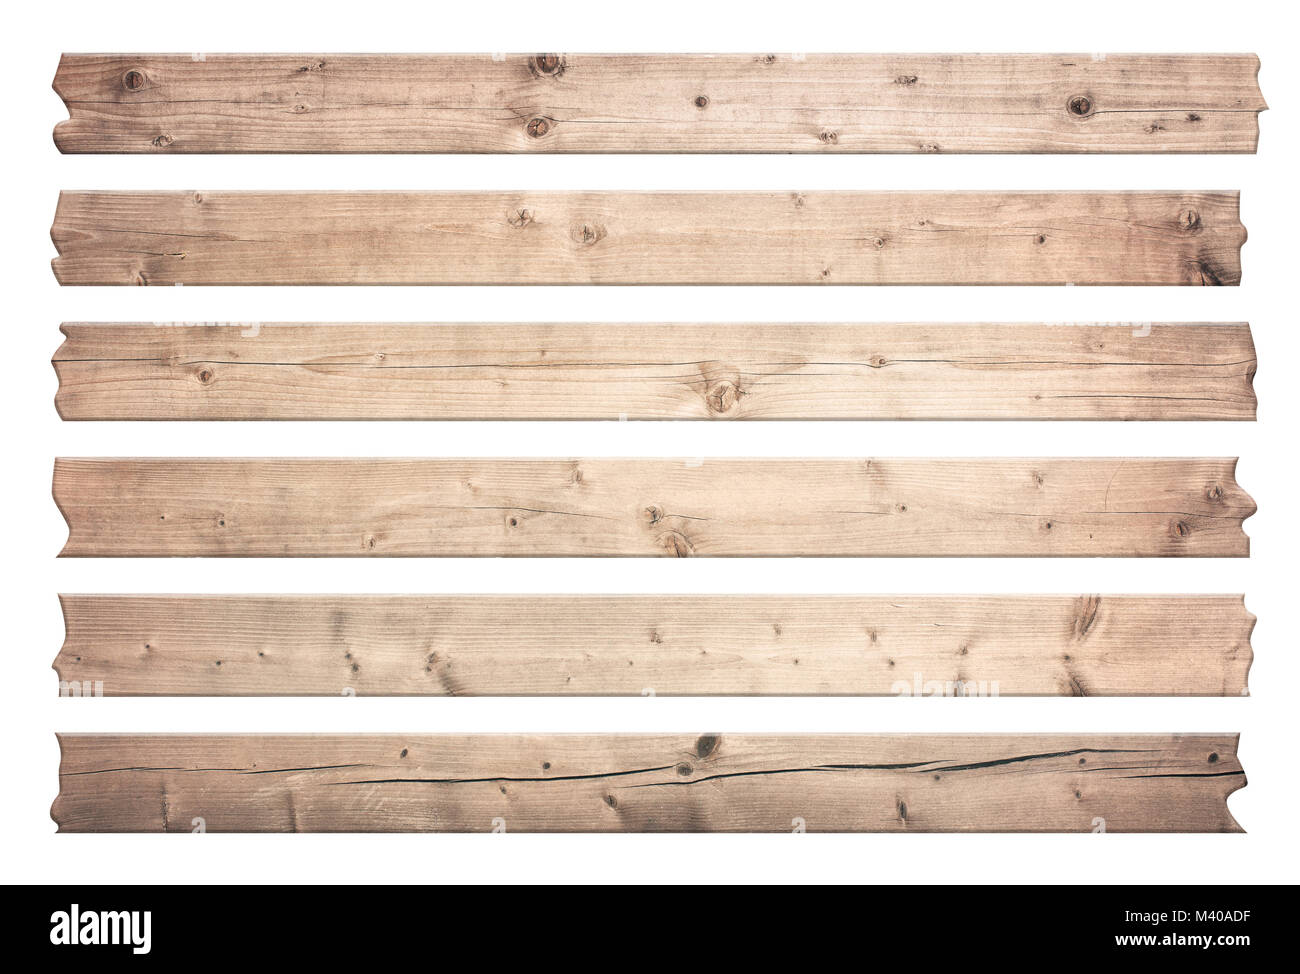 Old brown wooden planks for text are isolated on white background. - Stock Image